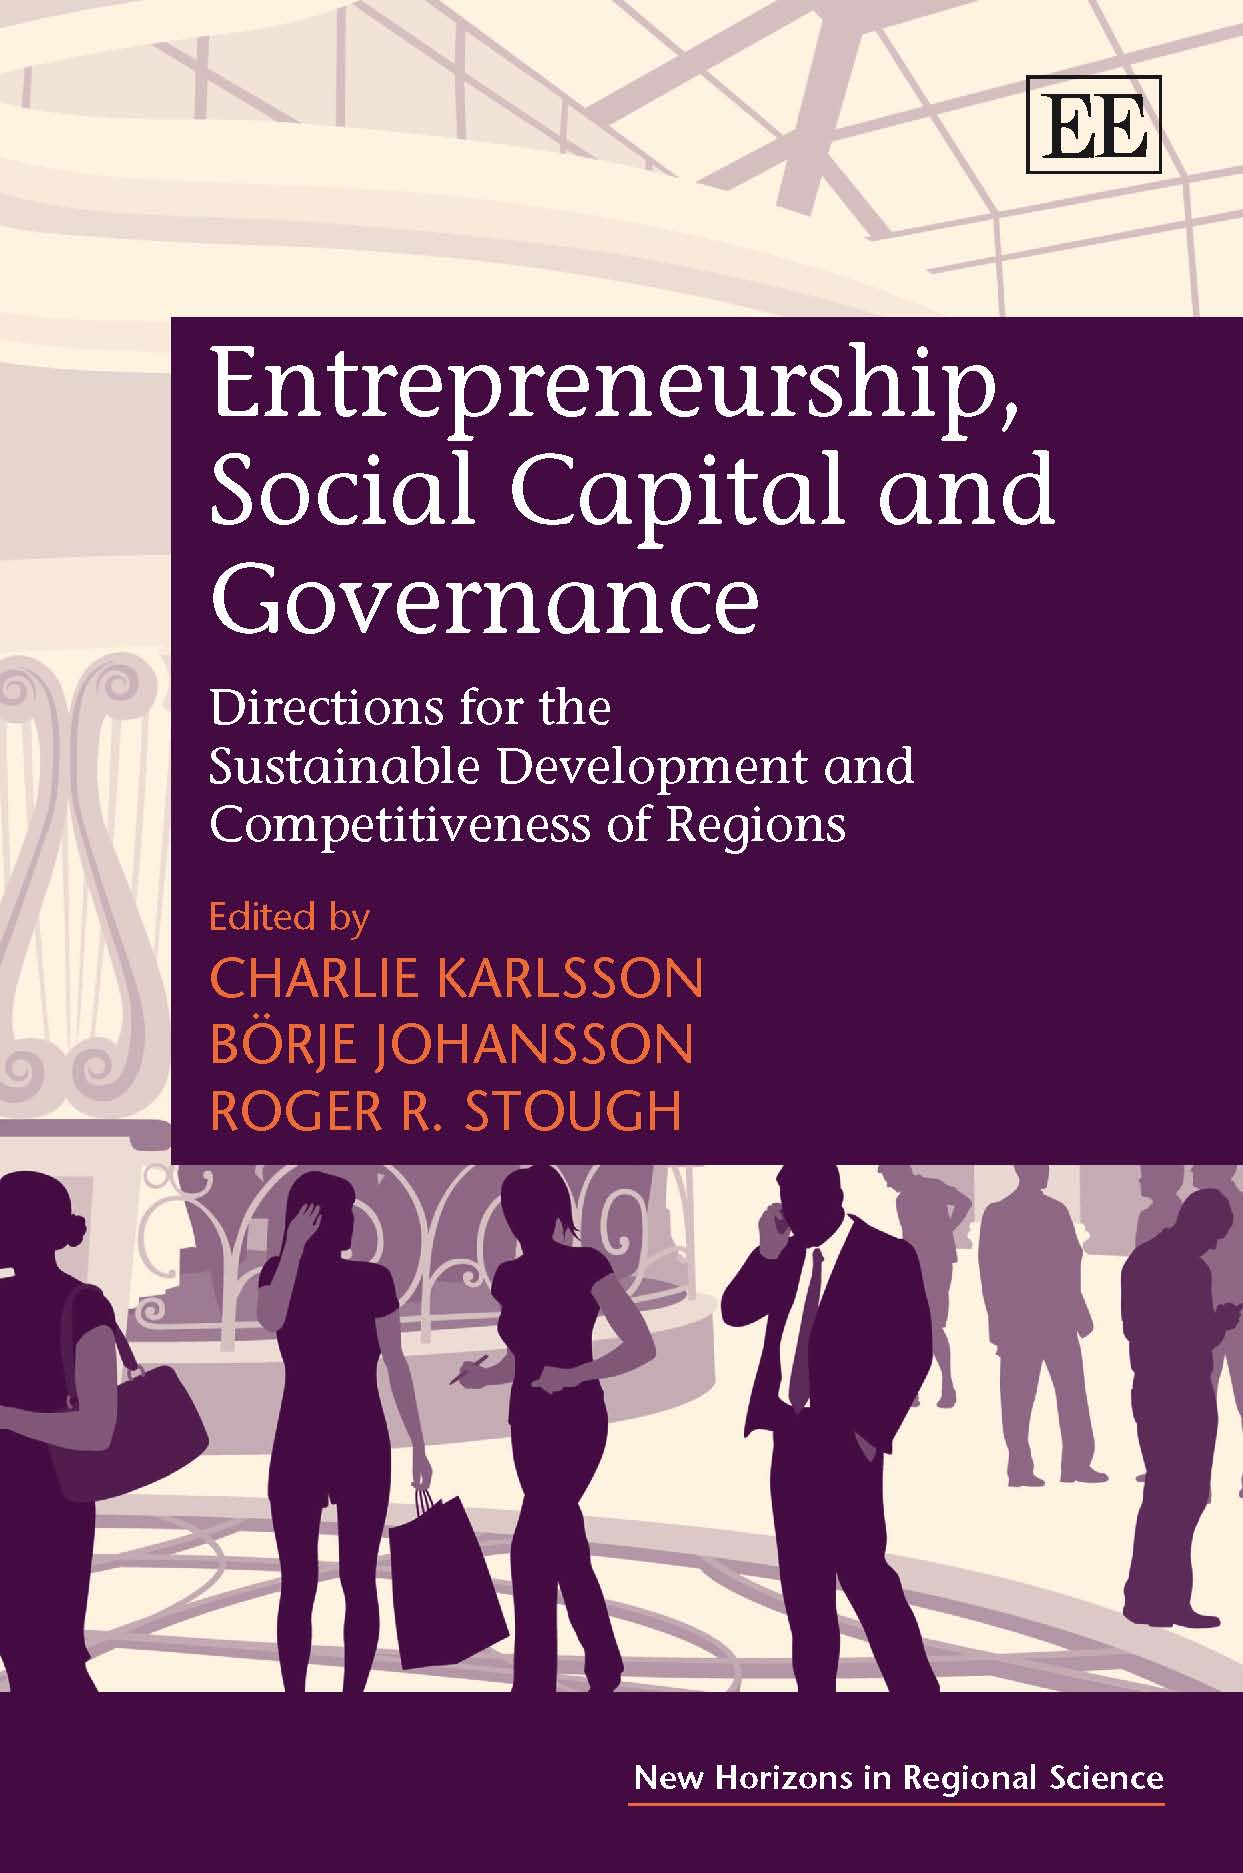 Download Ebook Entrepreneurship, Social Capital and Governance by Charlie Karlsson Pdf